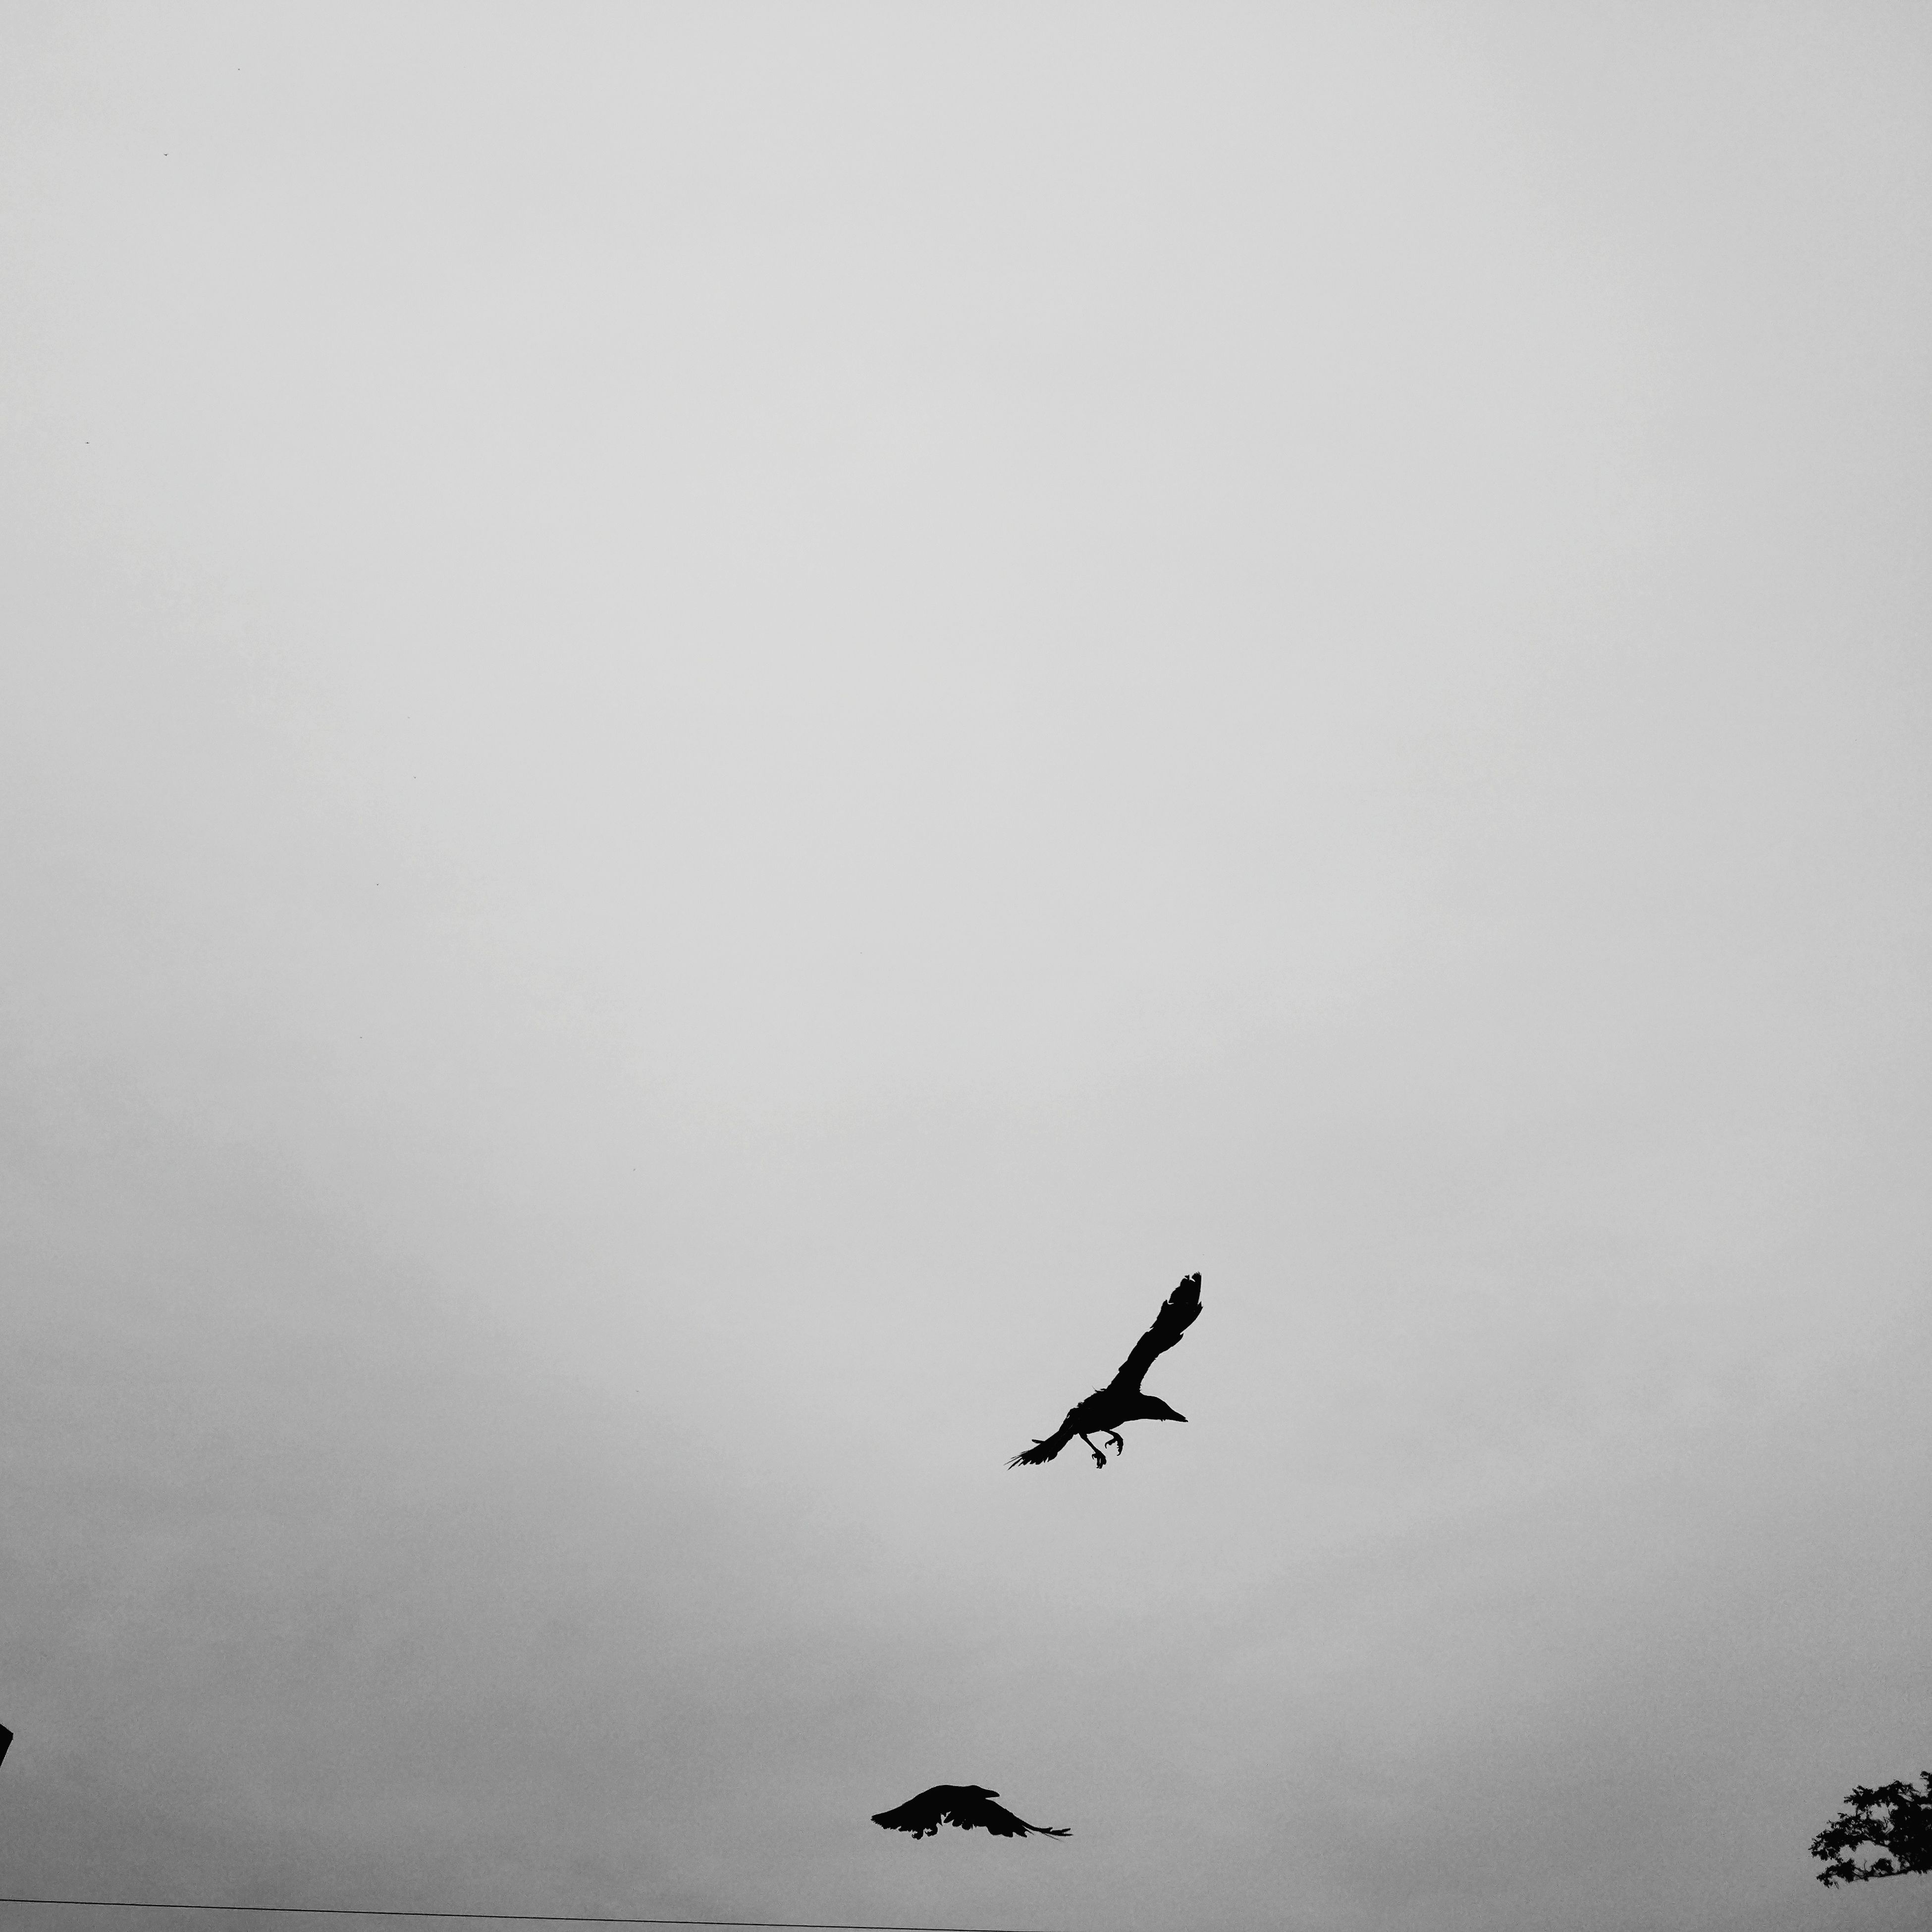 flying, bird, animals in the wild, animal themes, mid-air, one animal, spread wings, animal wildlife, copy space, low angle view, day, nature, no people, outdoors, clear sky, beauty in nature, sky, bird of prey